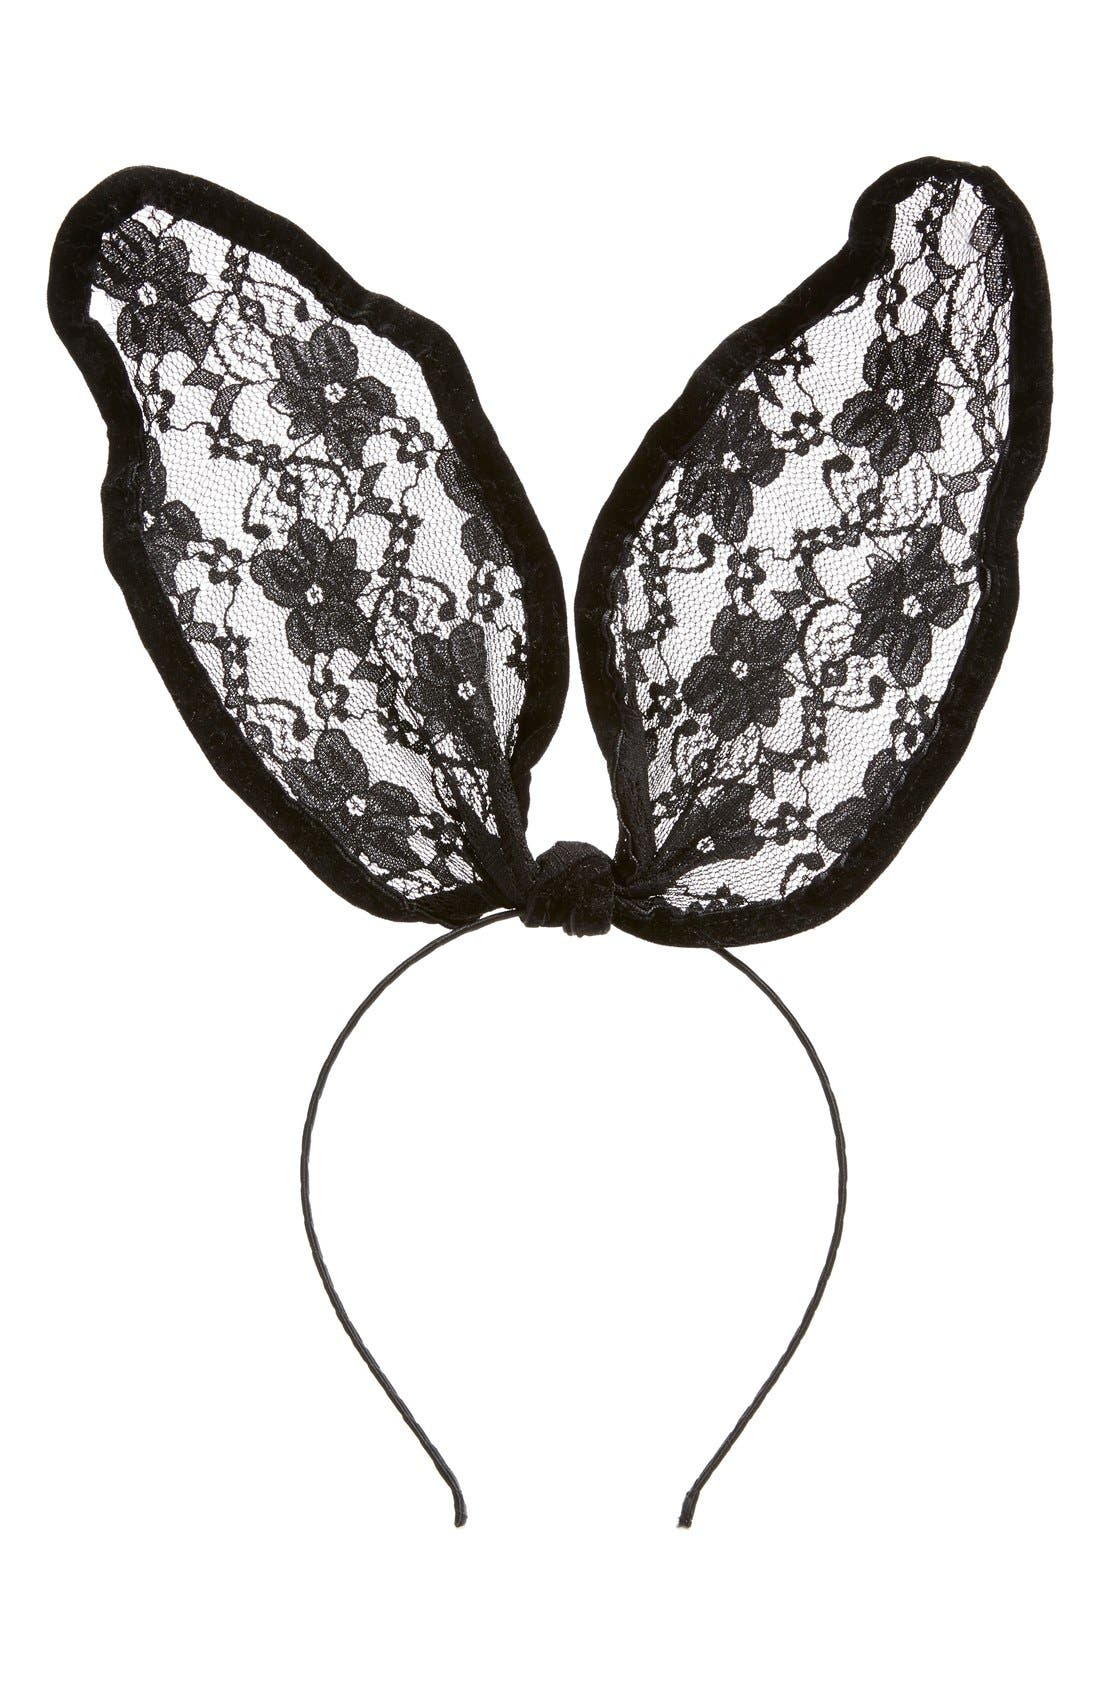 Alternate Image 1 Selected - Cara 'Drama' Lace Bunny Ear Headband